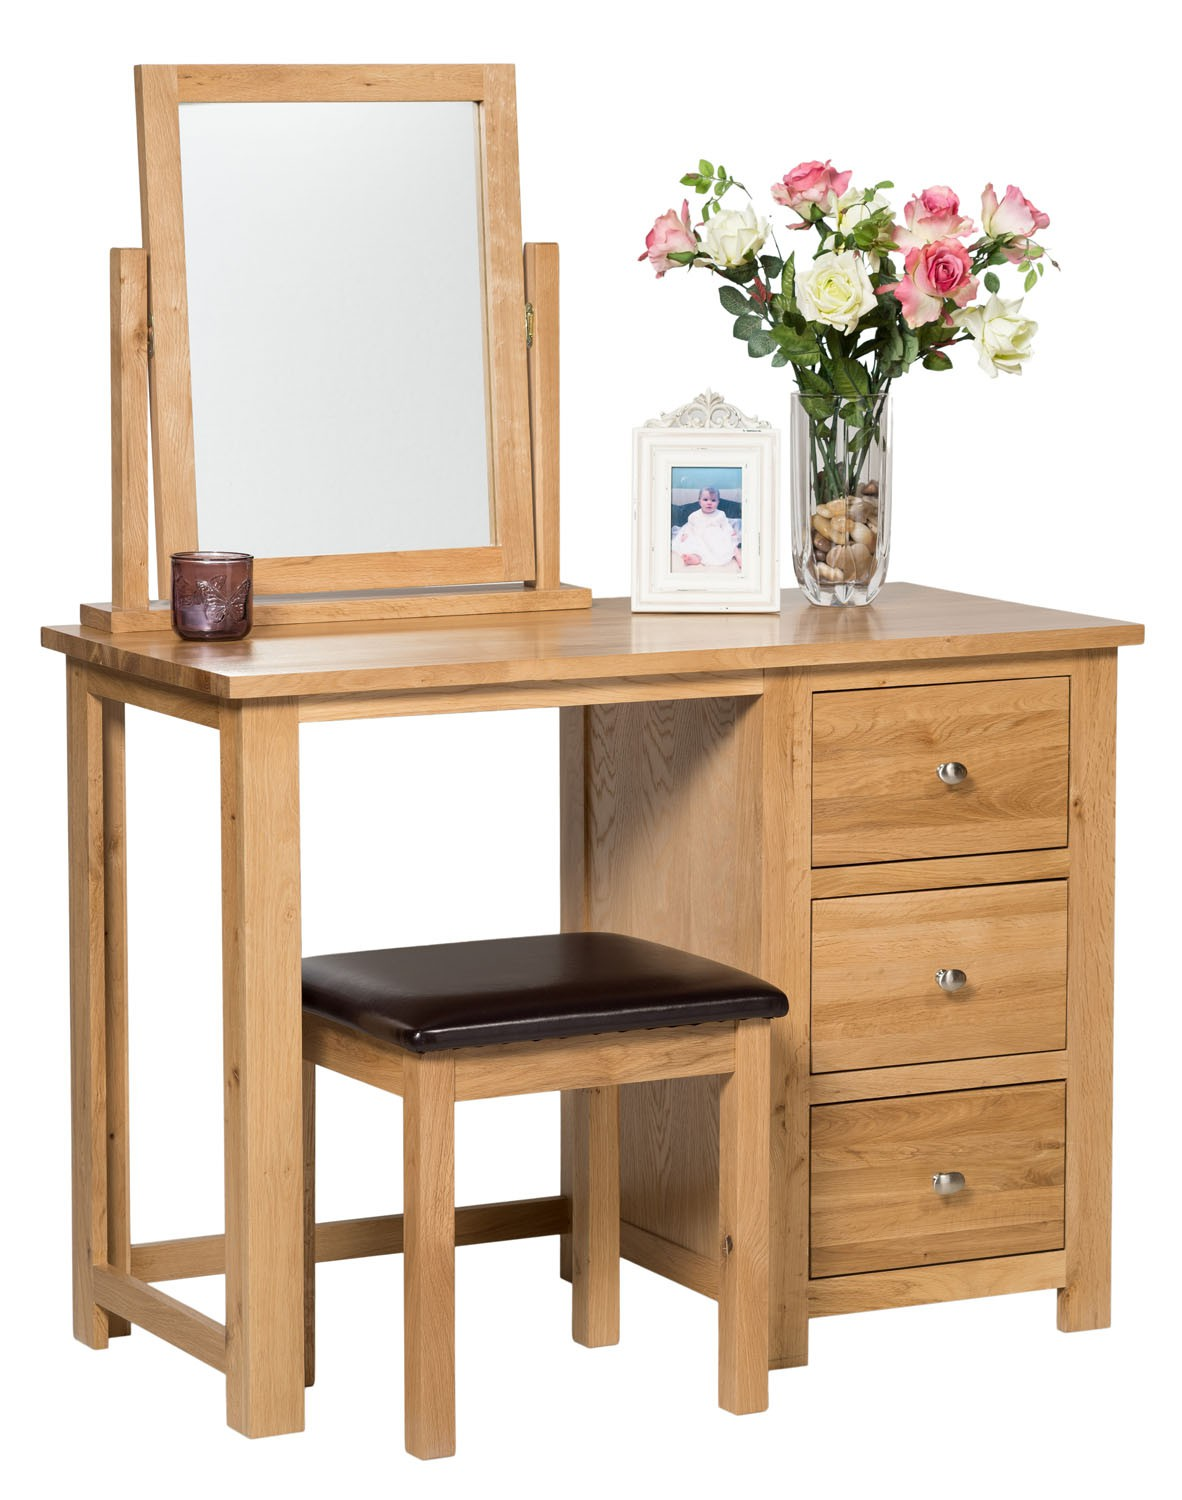 Dressing Table With Mirror ~ Waverly oak dressing table swing vanity mirror hallowood